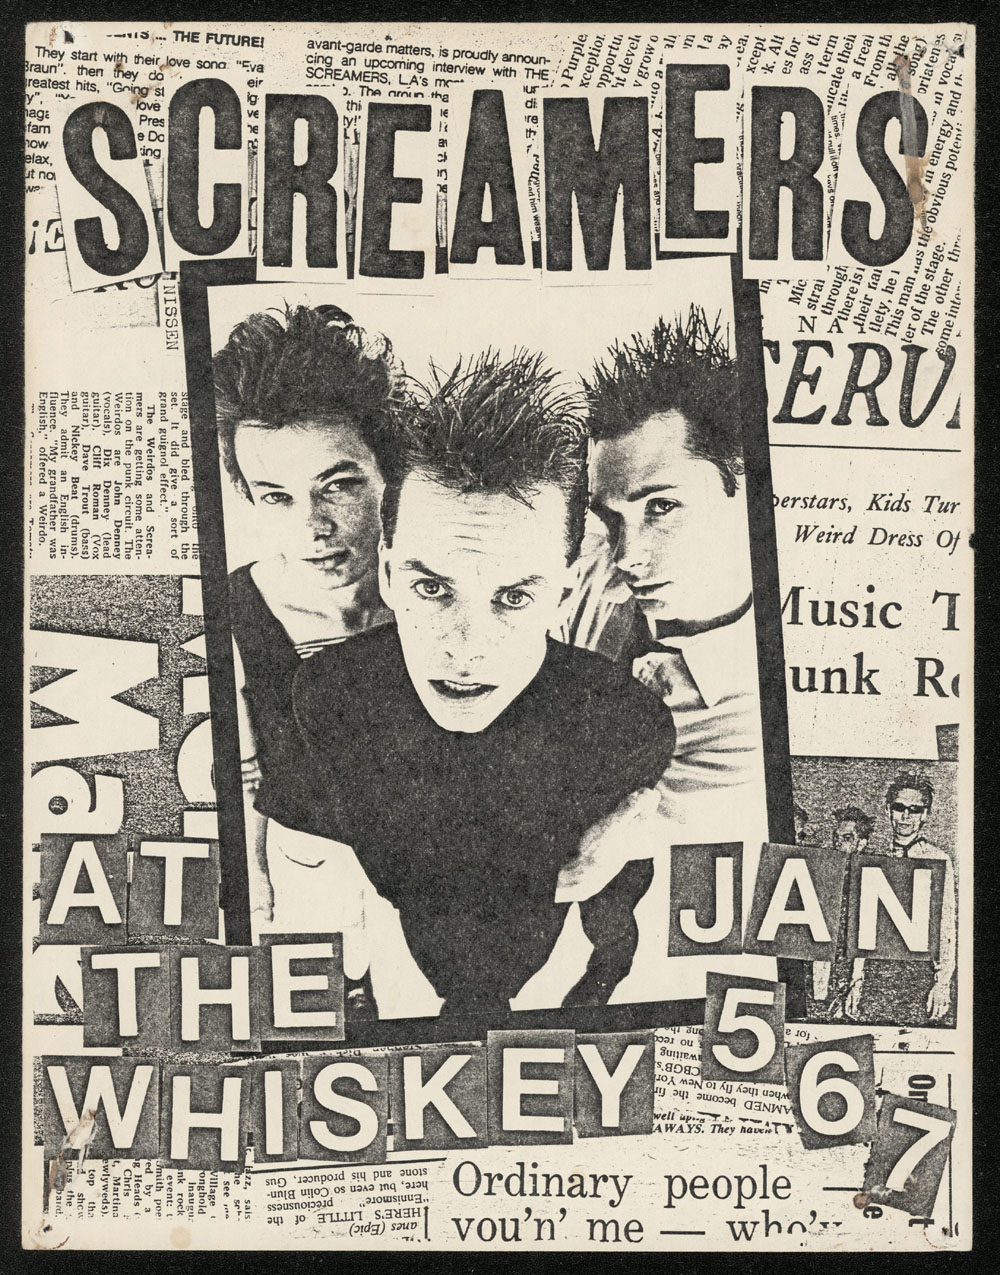 SCREAMERS at the Whisky